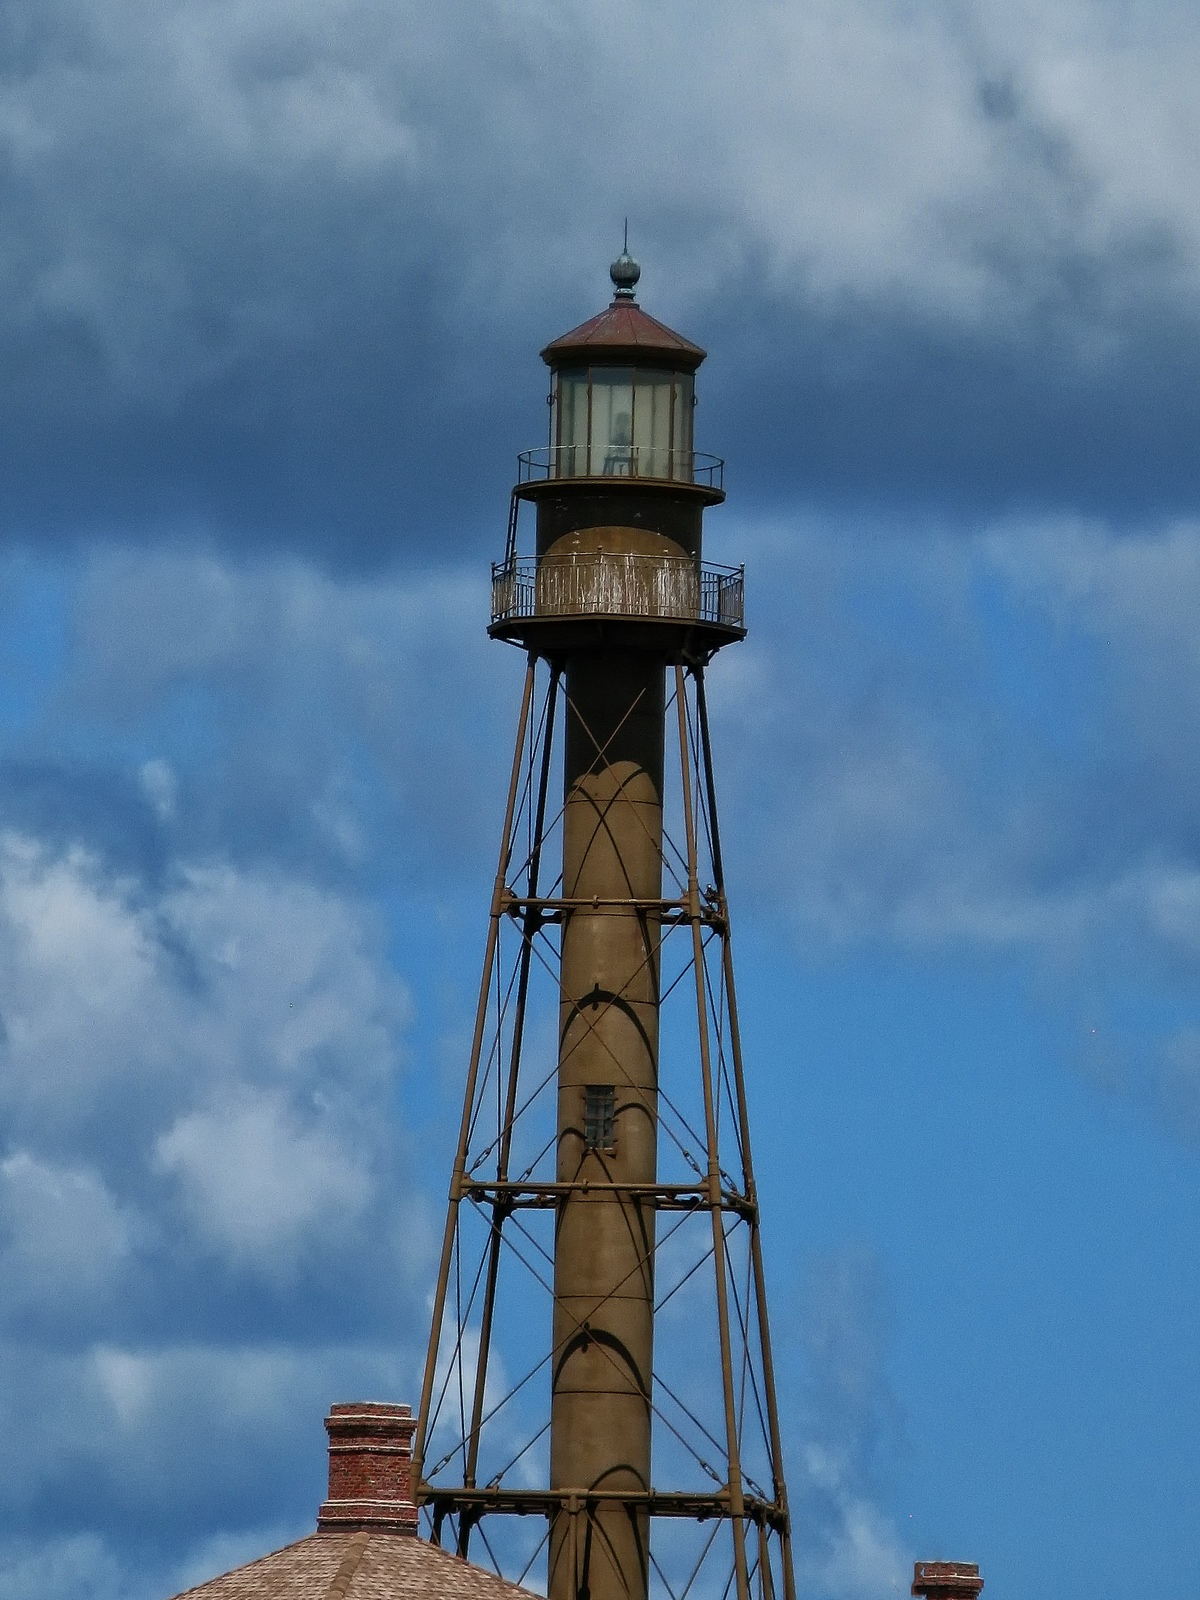 In 1884 the foundation was built for the 98 foot iron lighthouse.